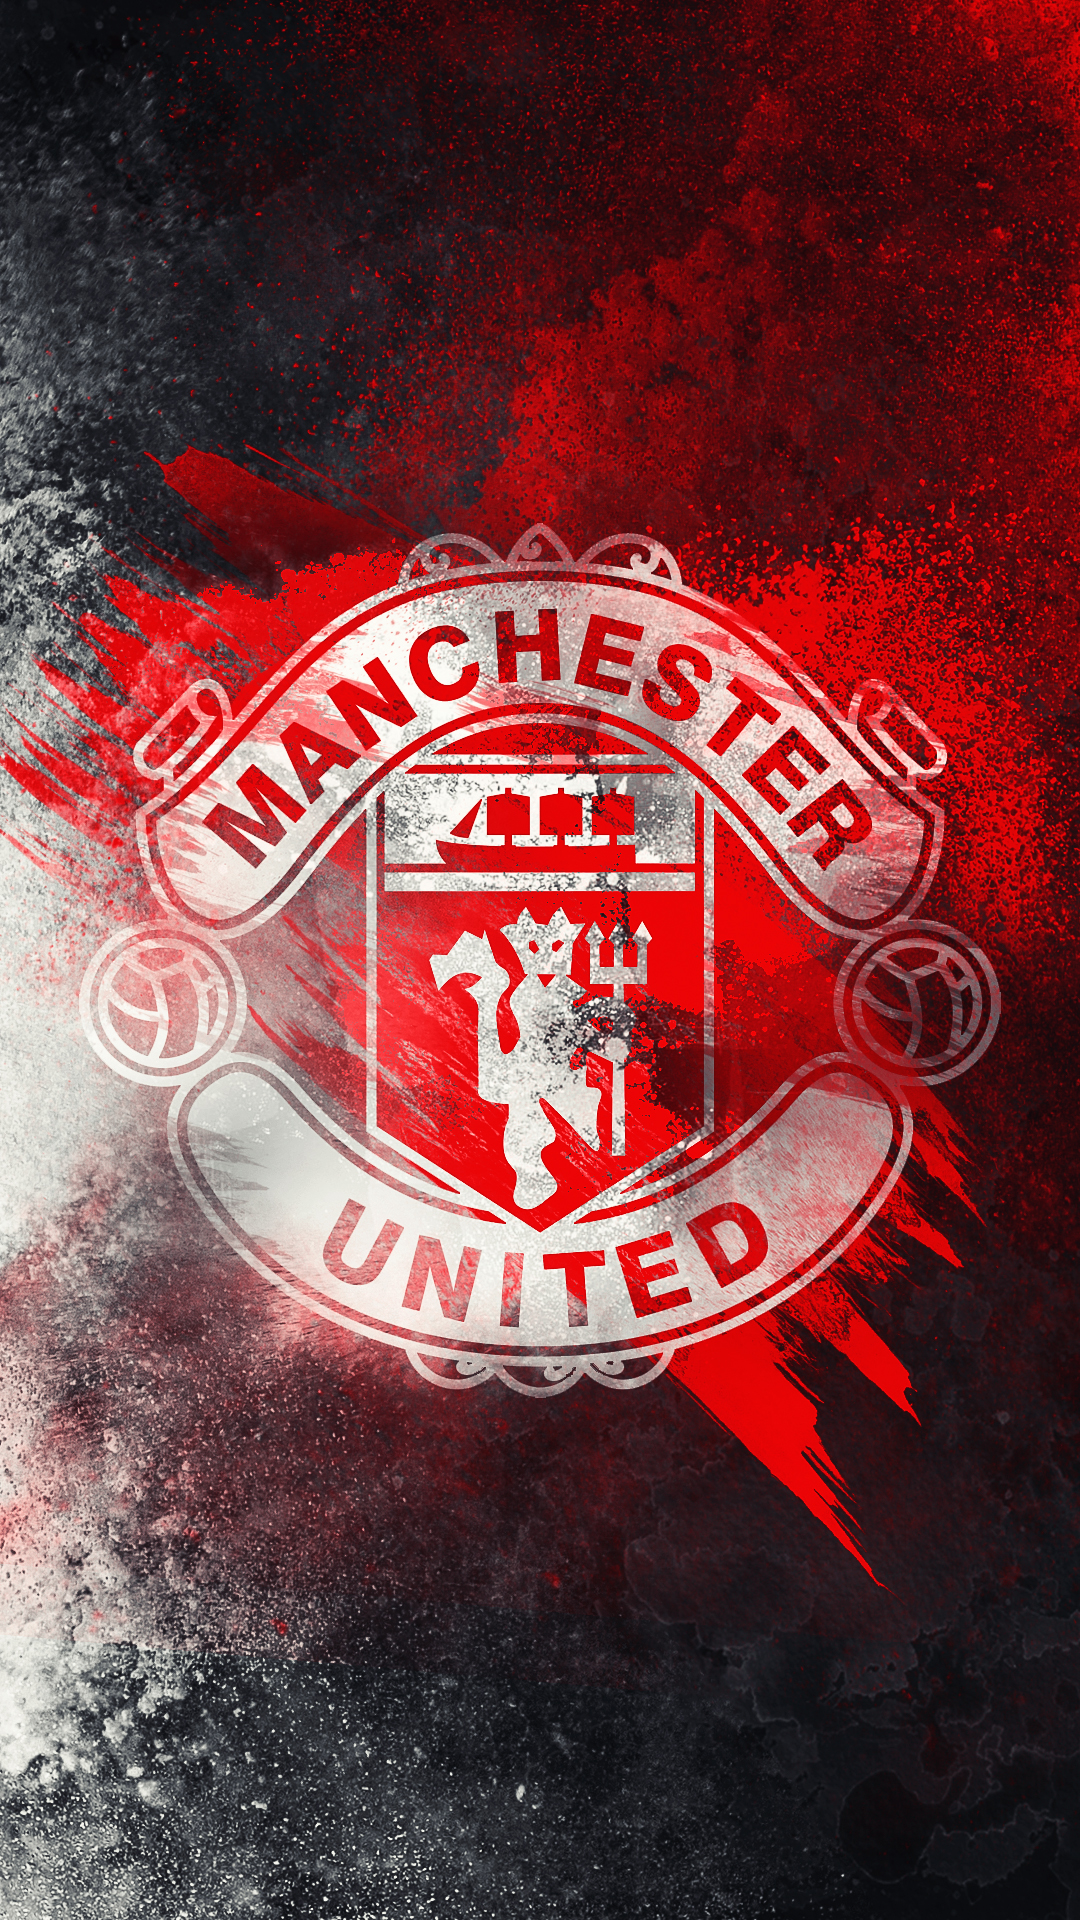 Manchester united 2018 wallpapers wallpapersafari - Cool man united wallpapers ...